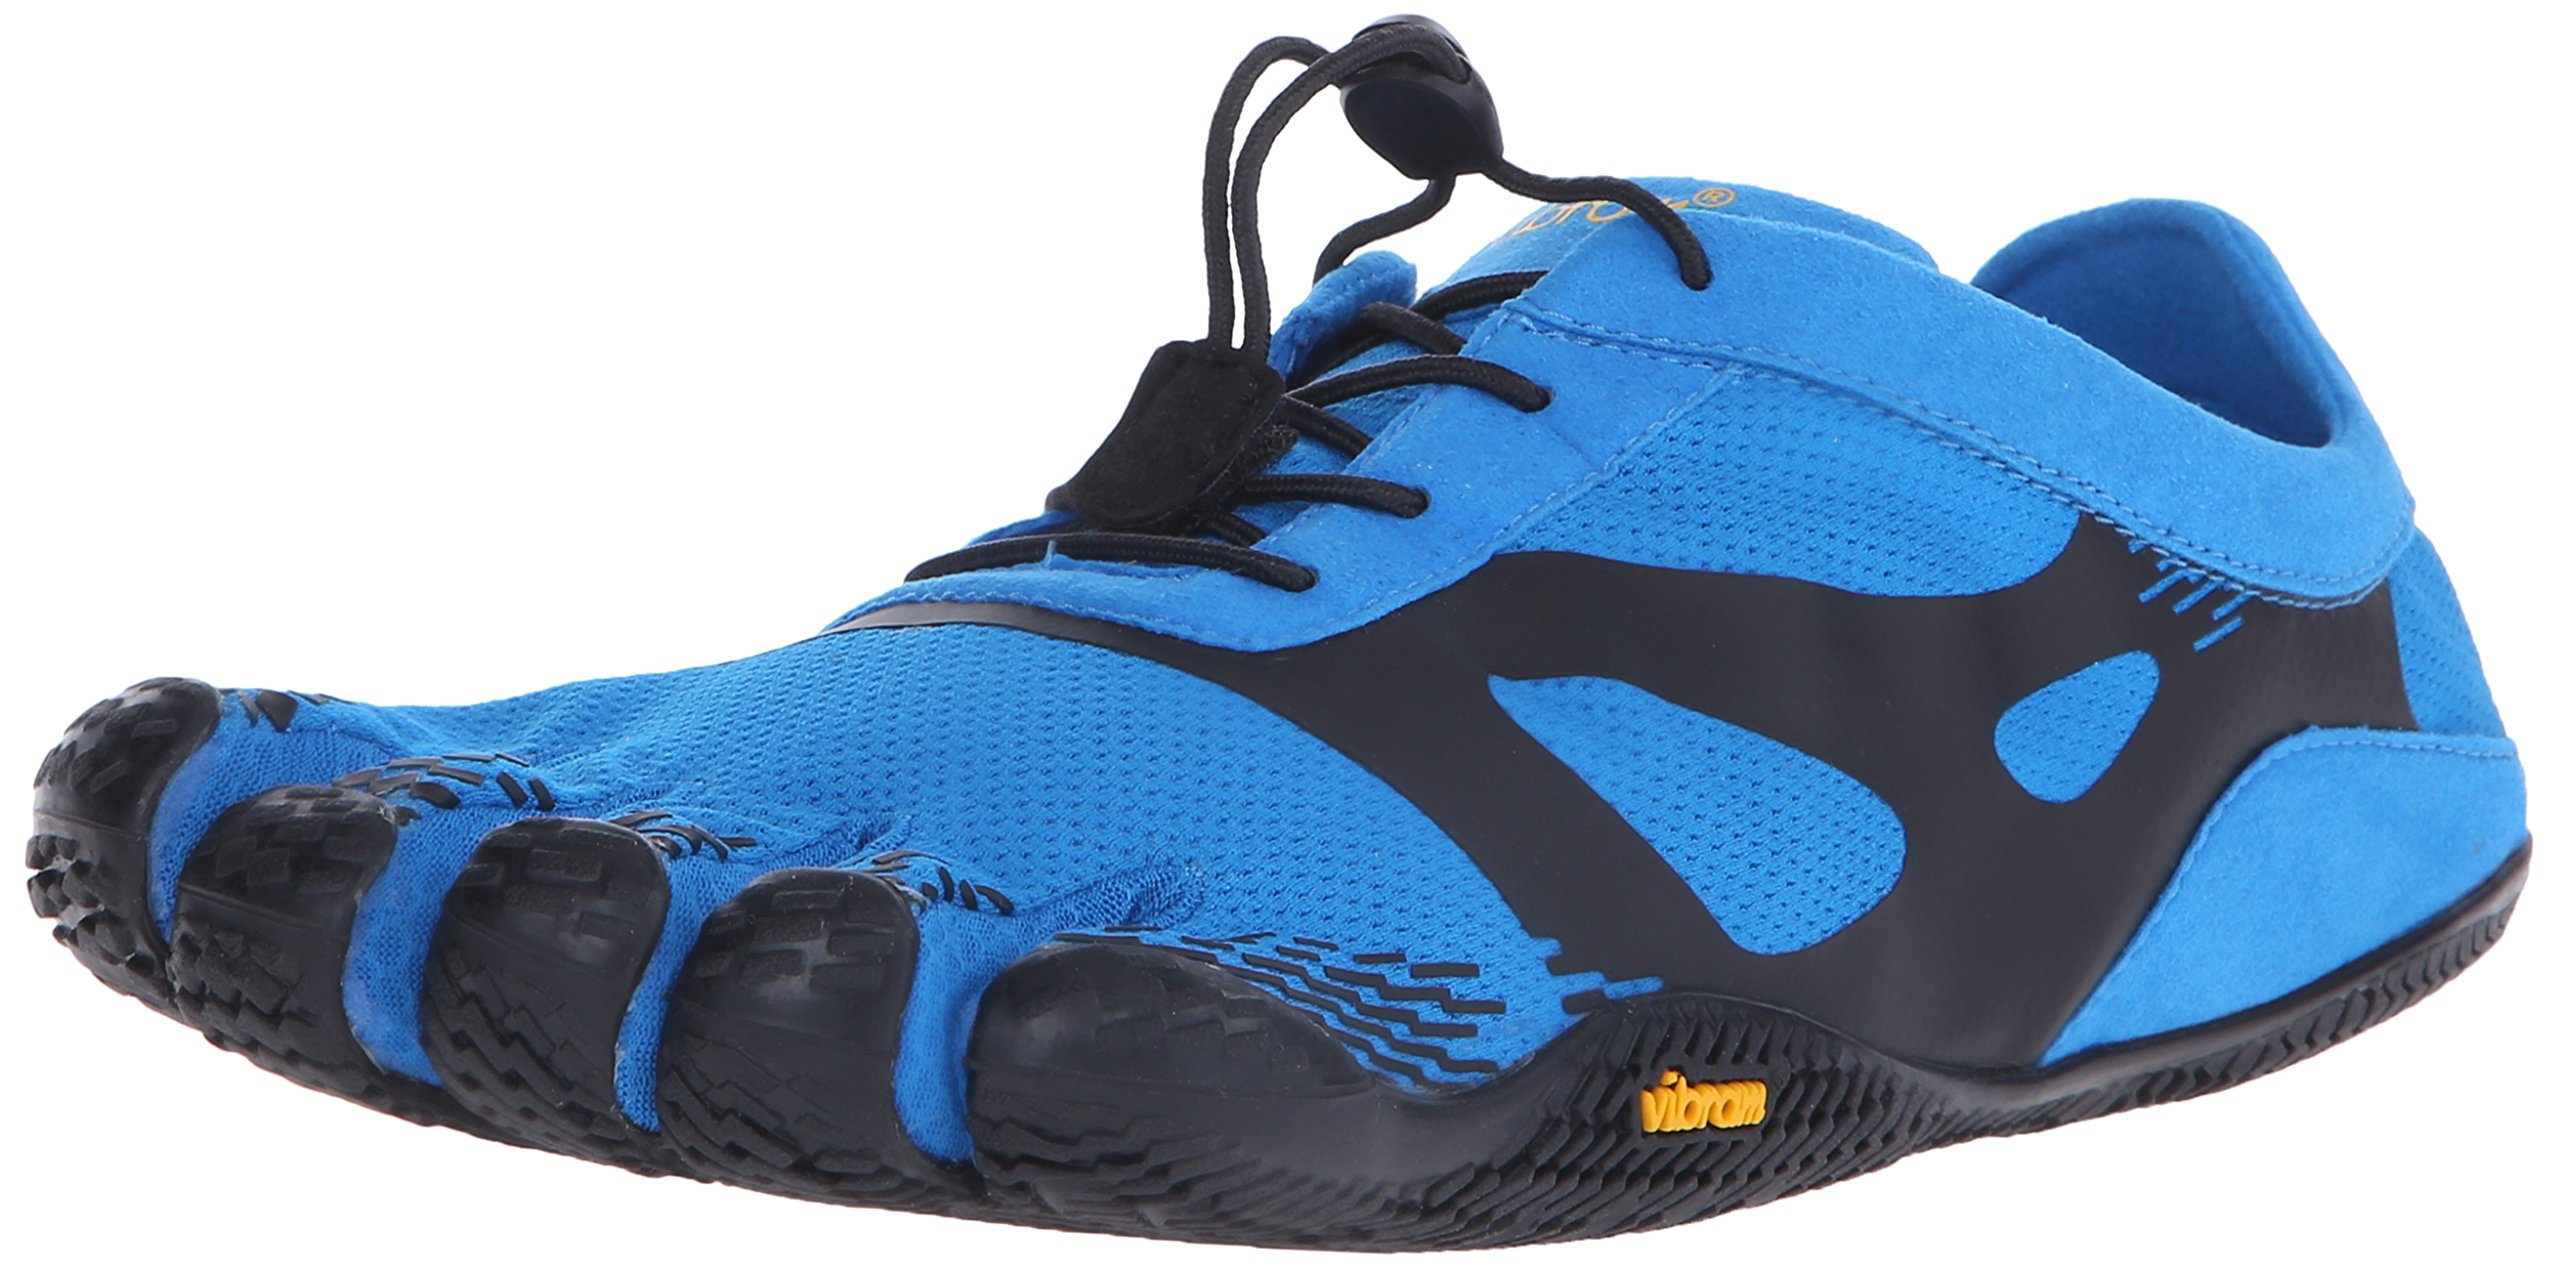 Vibram Men's KSO EVO Cross Training Shoe,Blue/Black,44 EU/10.5-11 M US